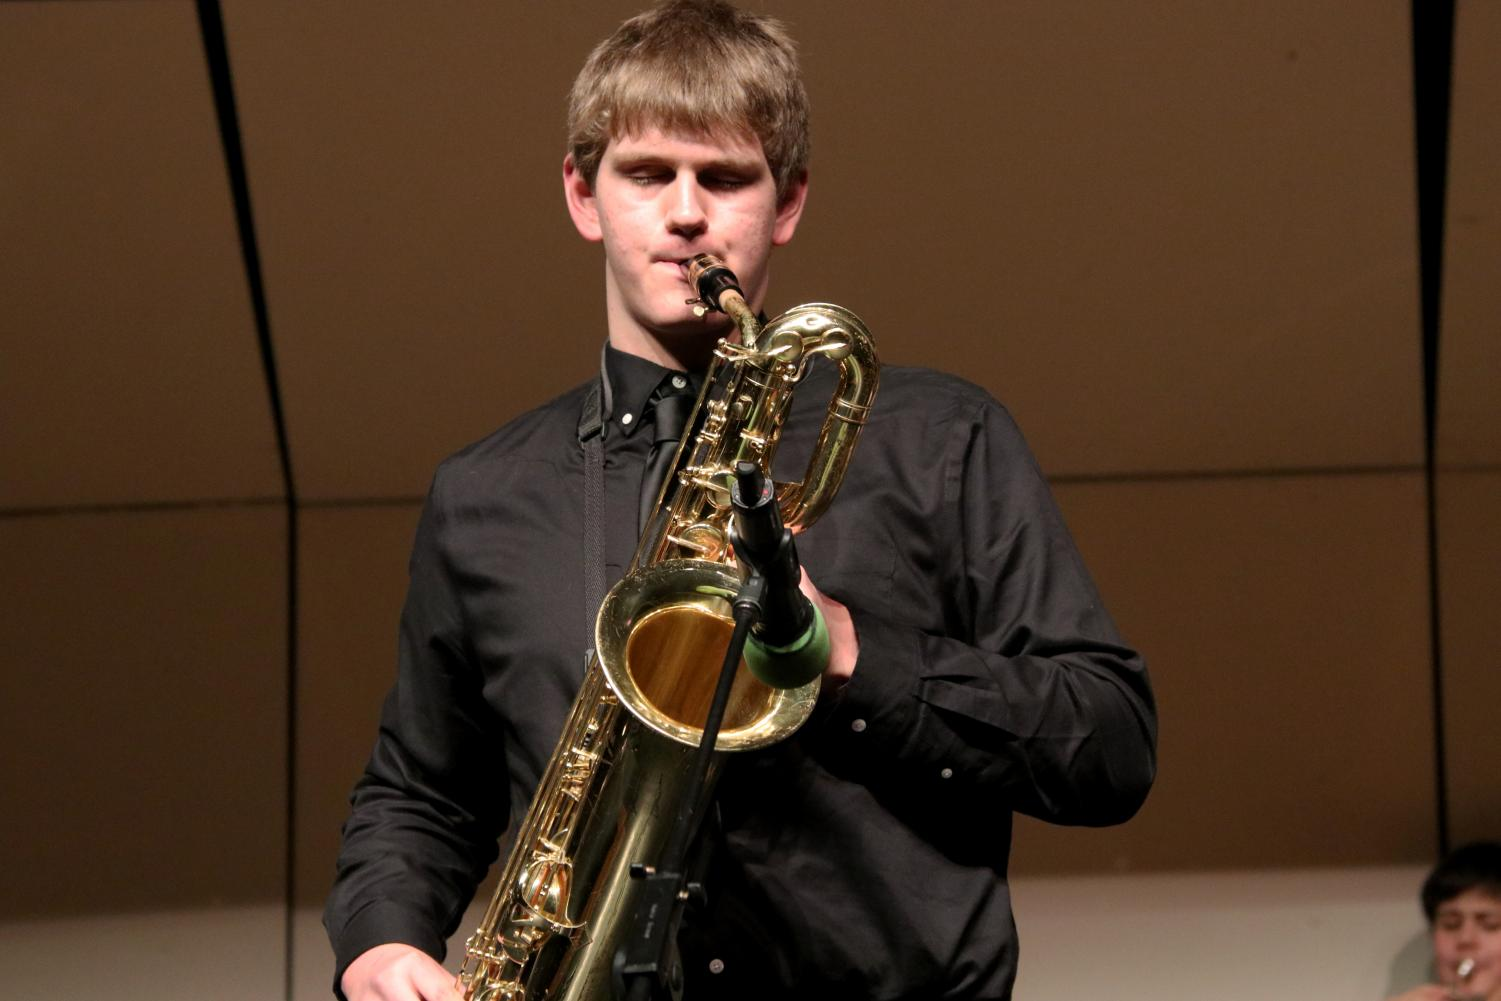 Avery+Goodrich+plays+the+bari+Saxophone+in+a+solo+during+the+first+piece.